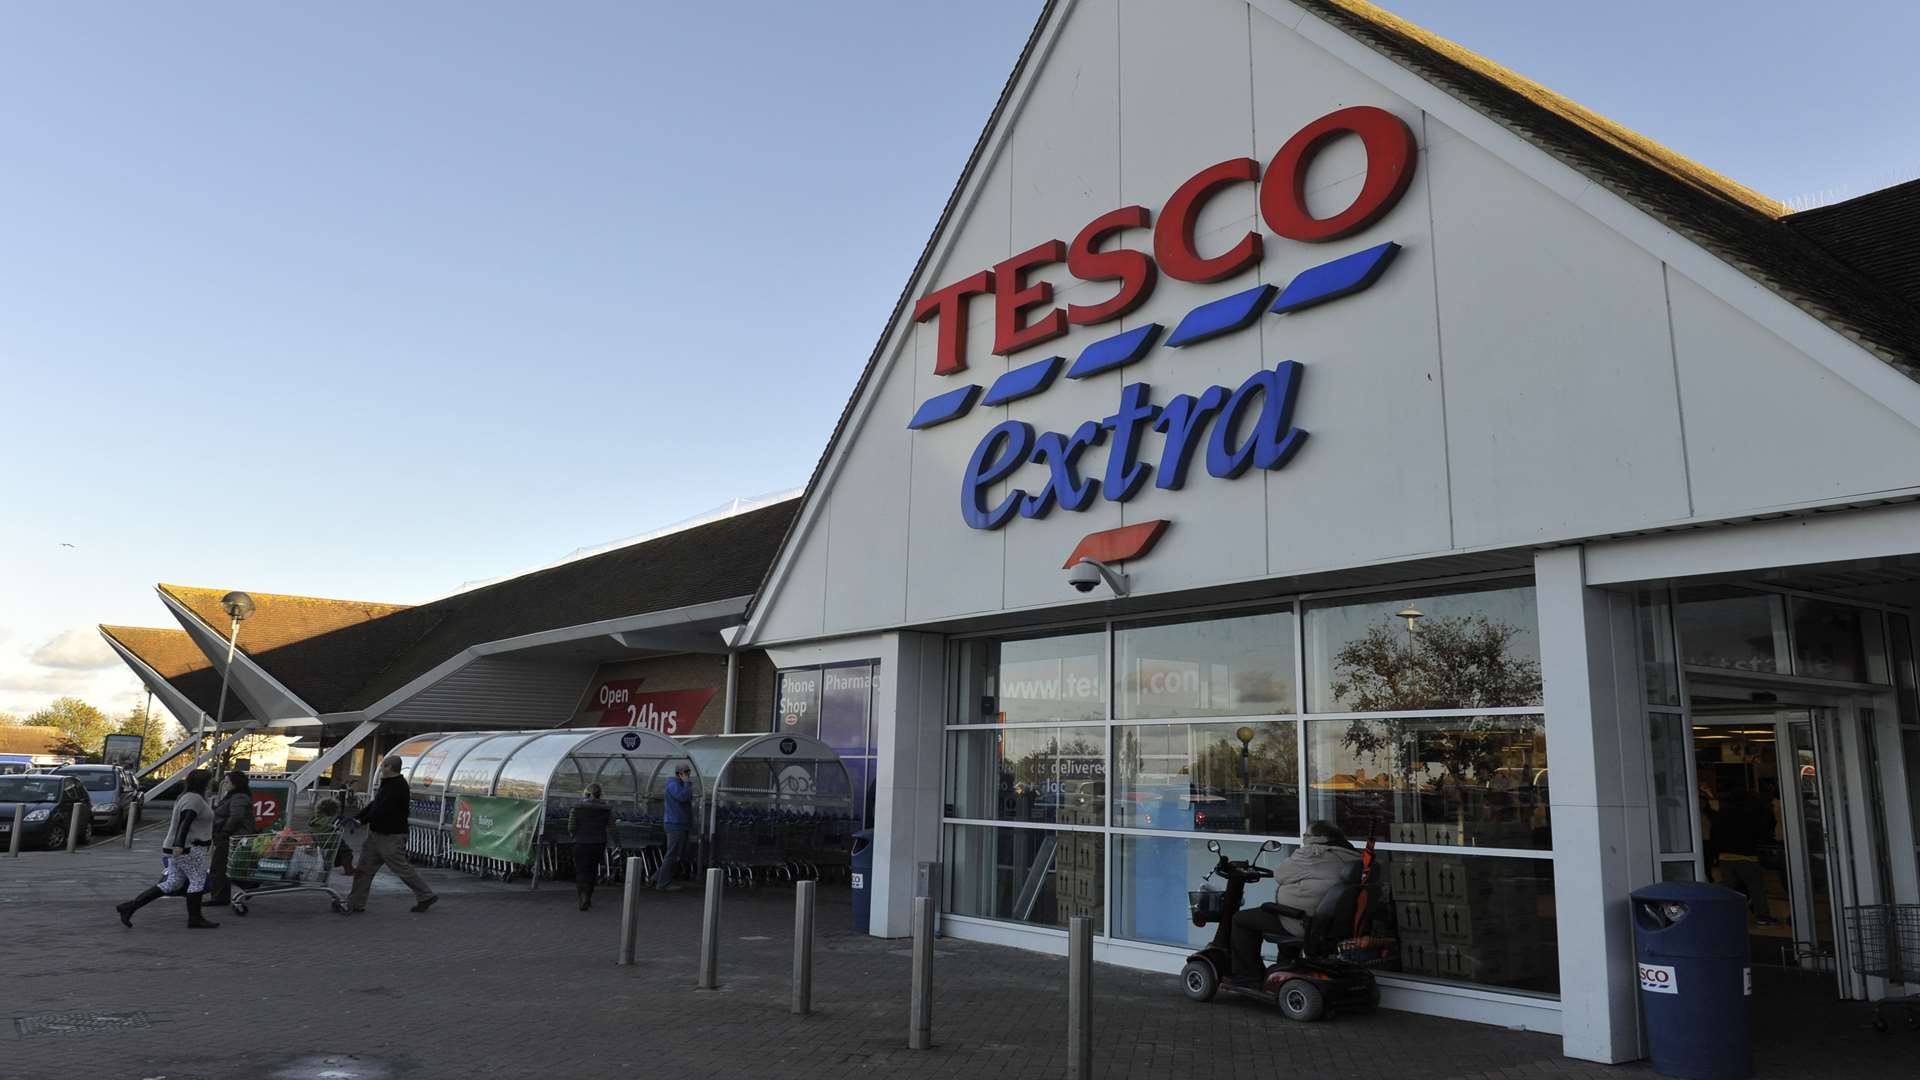 A Tesco Extra store in Whitstable